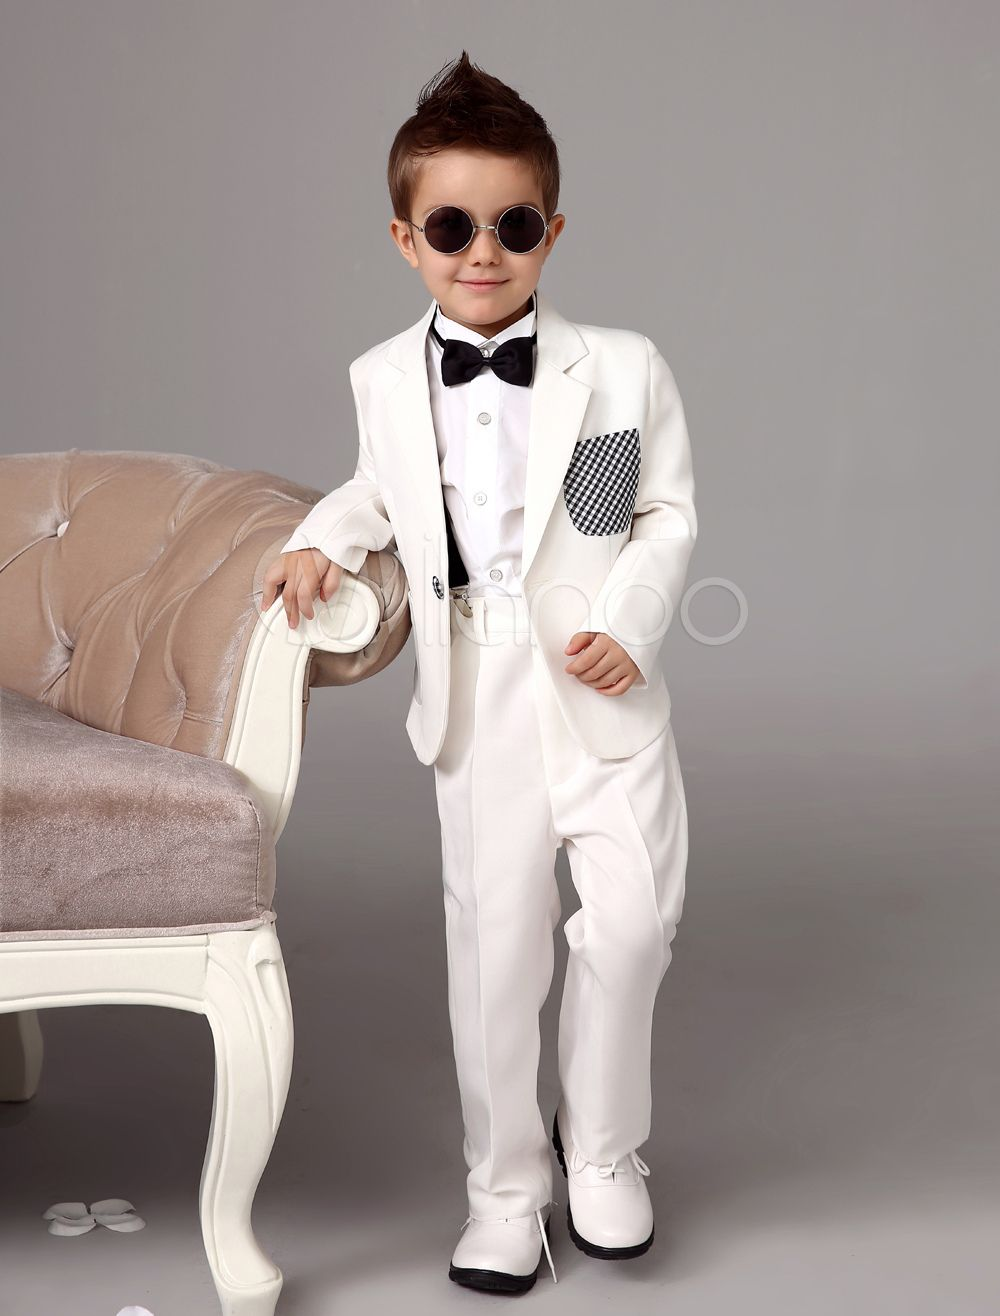 0ec41c3dcb01 White Boy Suit Wedding Tuxedo Jacket Pants Shirts Bow Tie Kids Formal Wear  4 Pcs Ring Bearer Suit Set